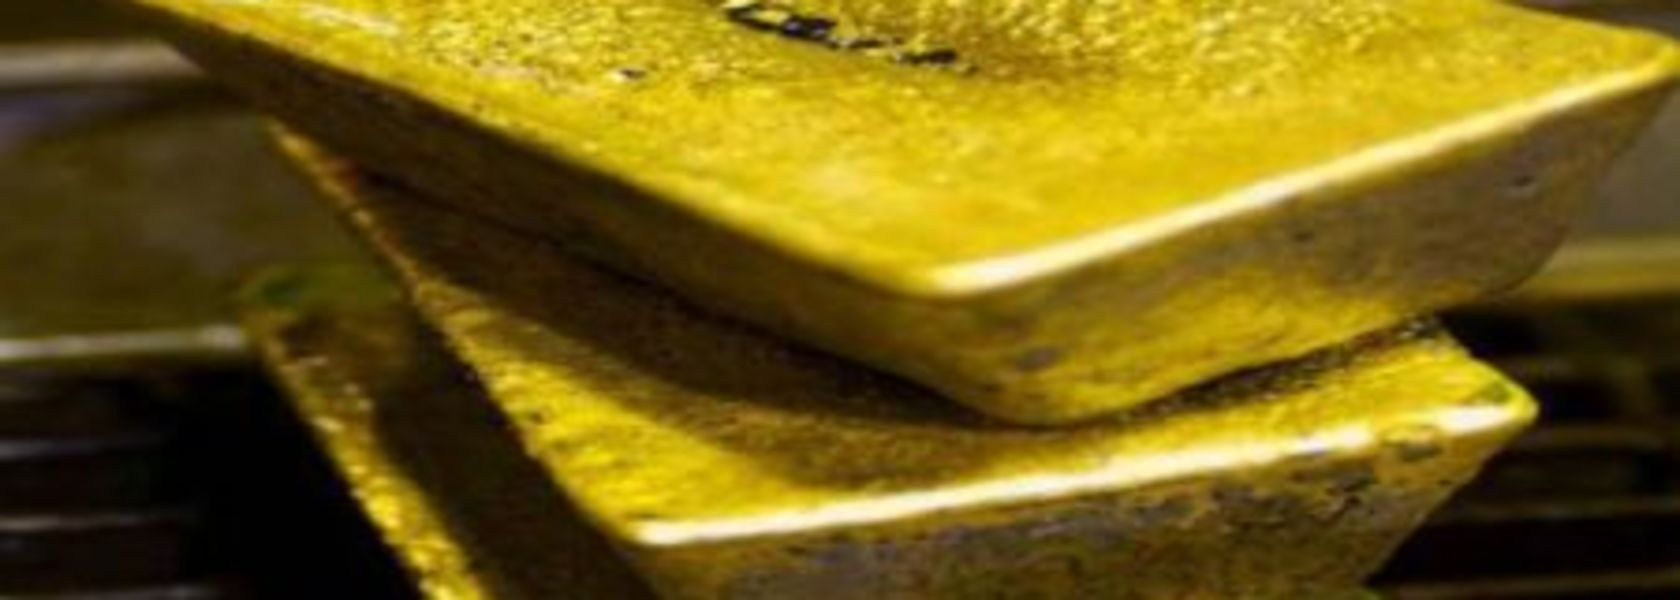 Gold production hiccups matter less under QE3: Macquarie